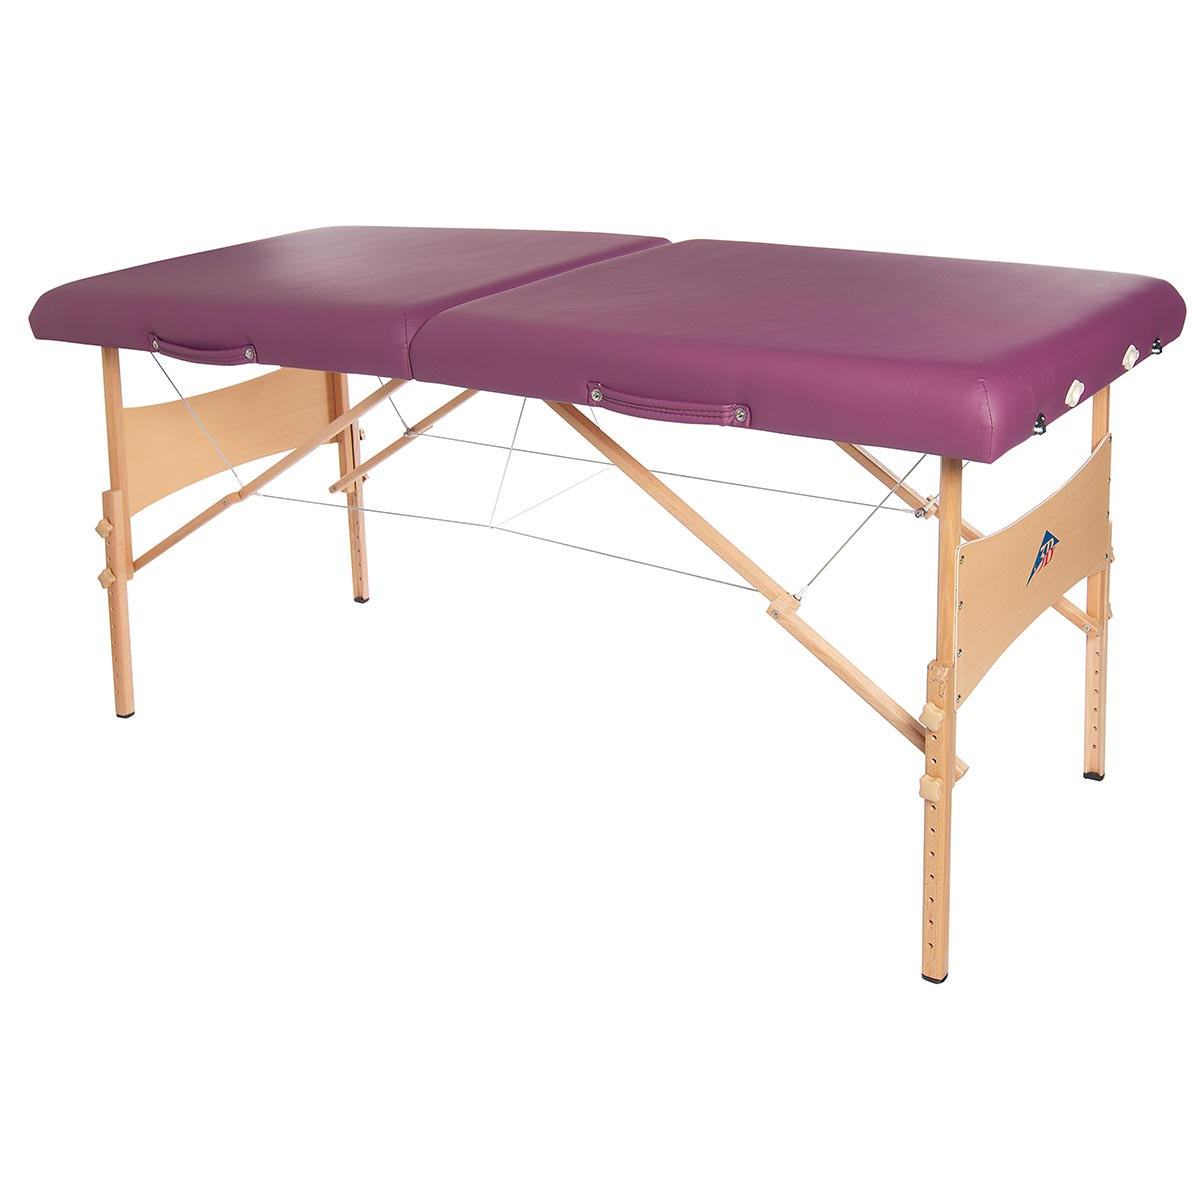 Portable massage table massage tables massage furniture for Massage table